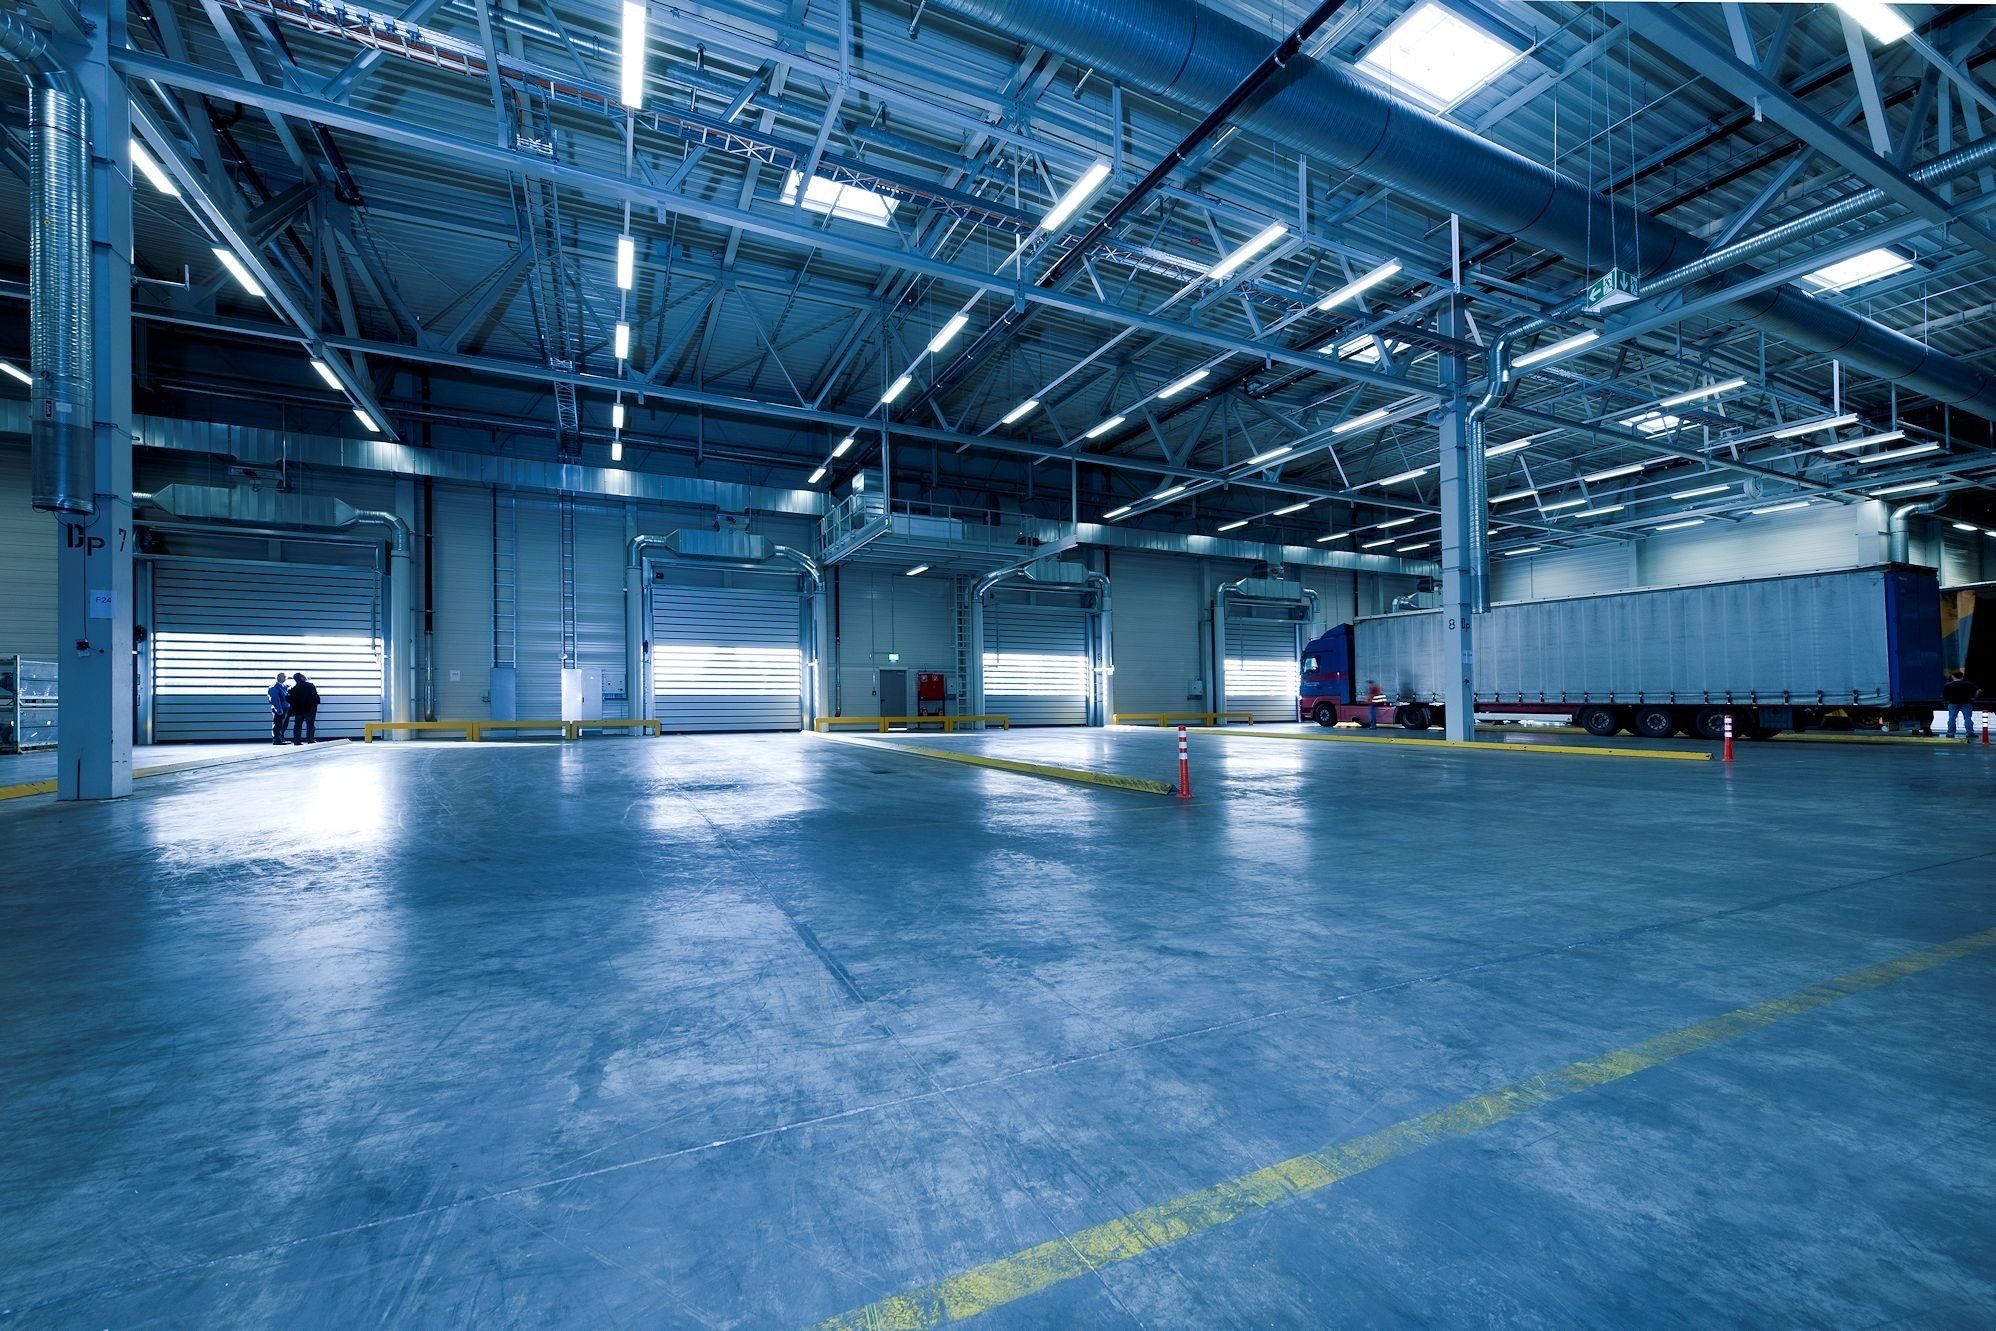 A blue warehouse which may be in need of an electric stacker lift.